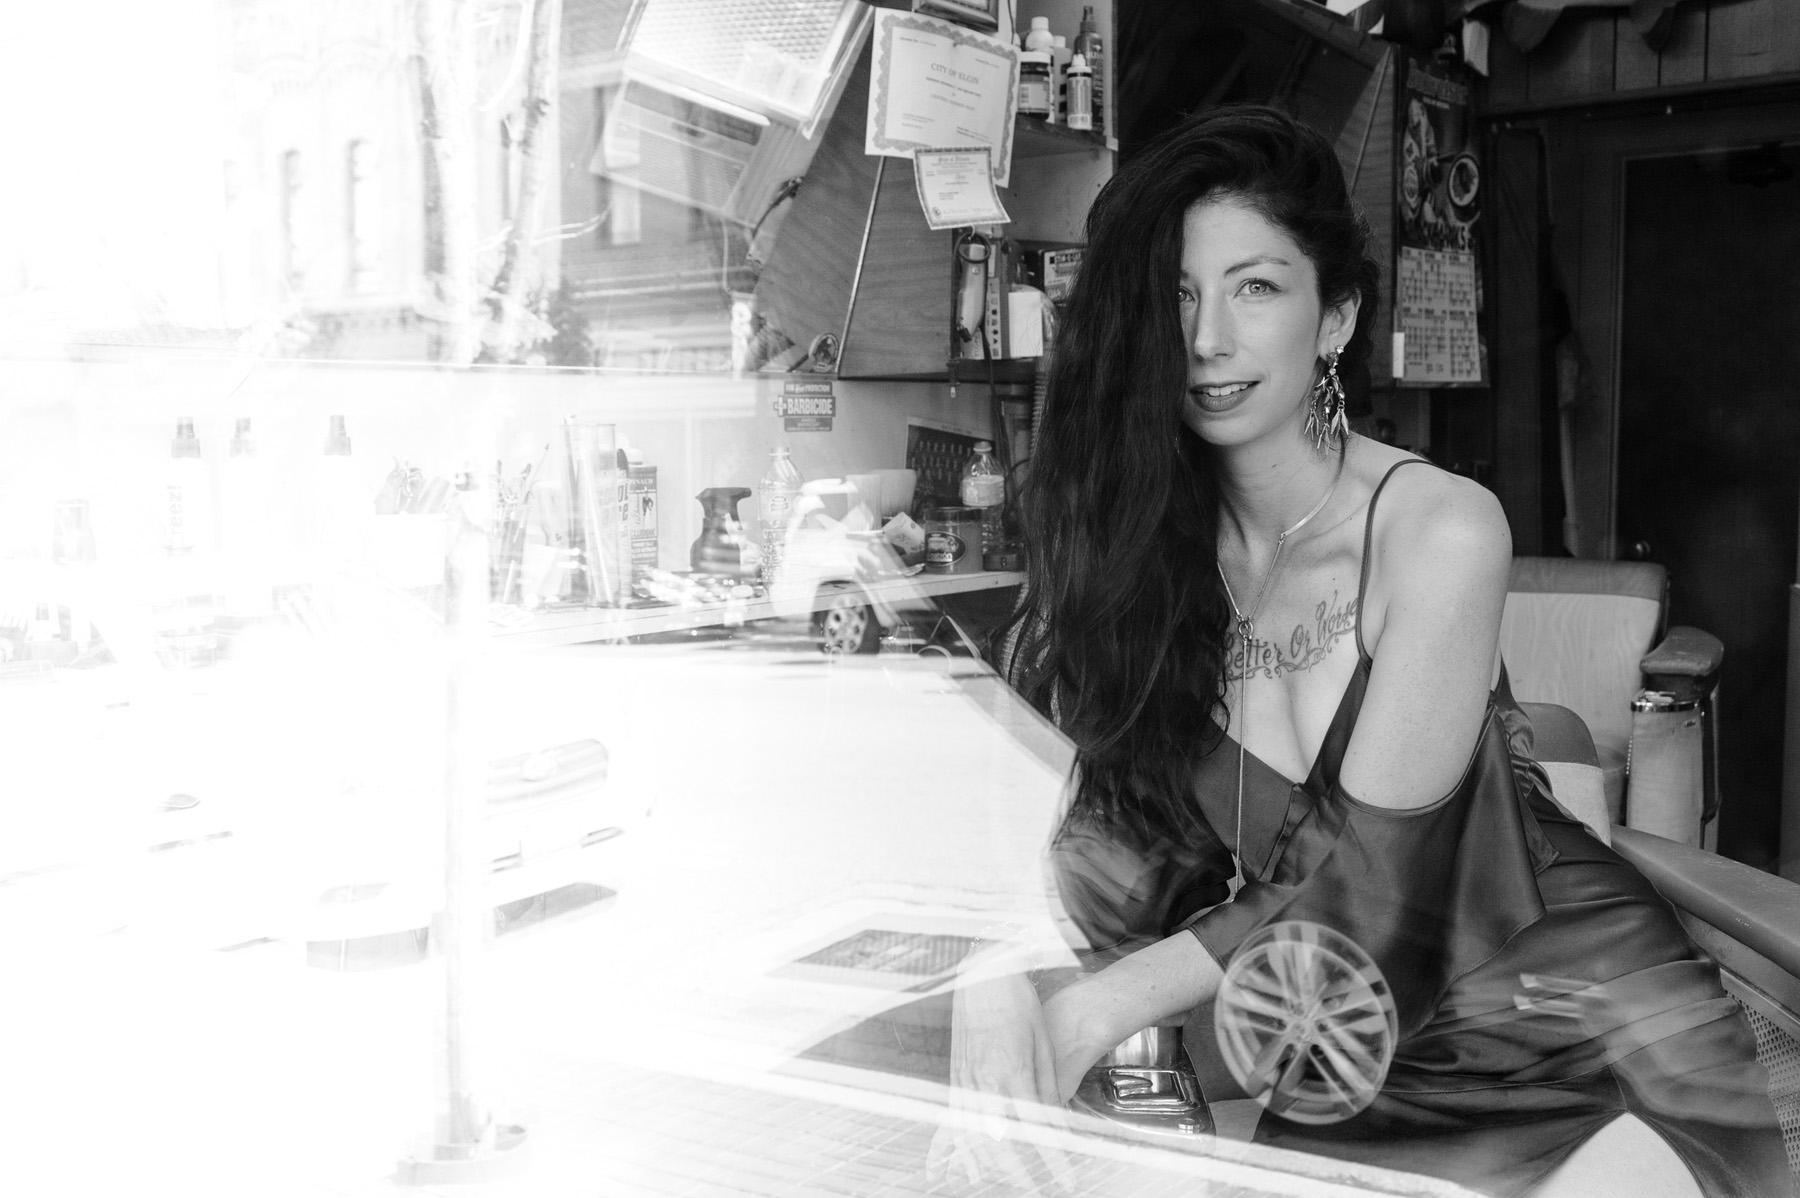 Black and white portrait of Jennifer sitting in a chair of a classic barber shop shot through a window